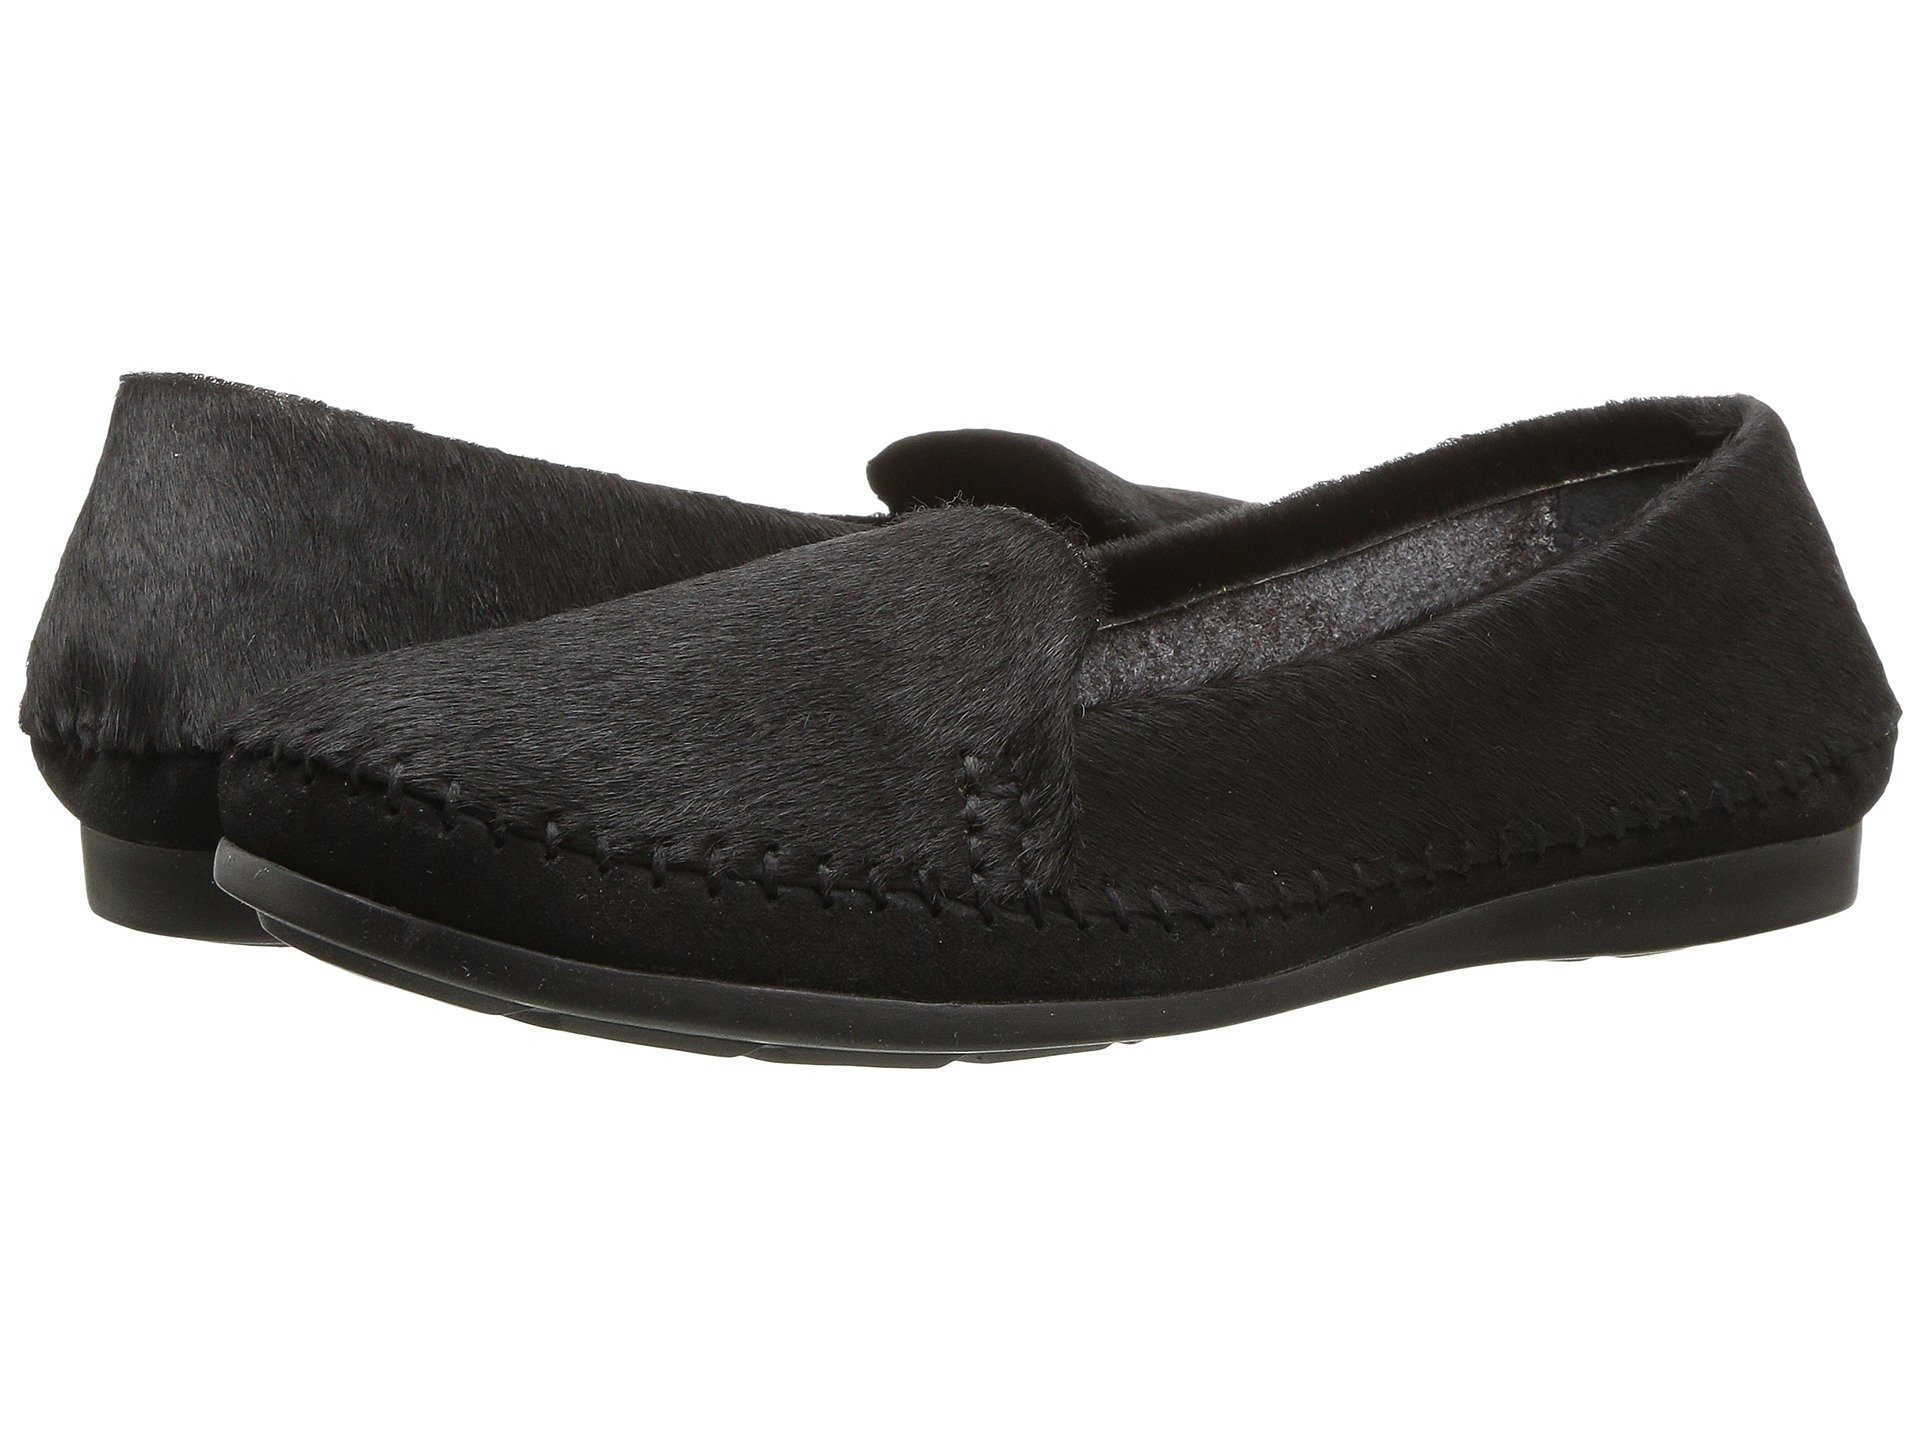 WARM CREATURE Slip, Black